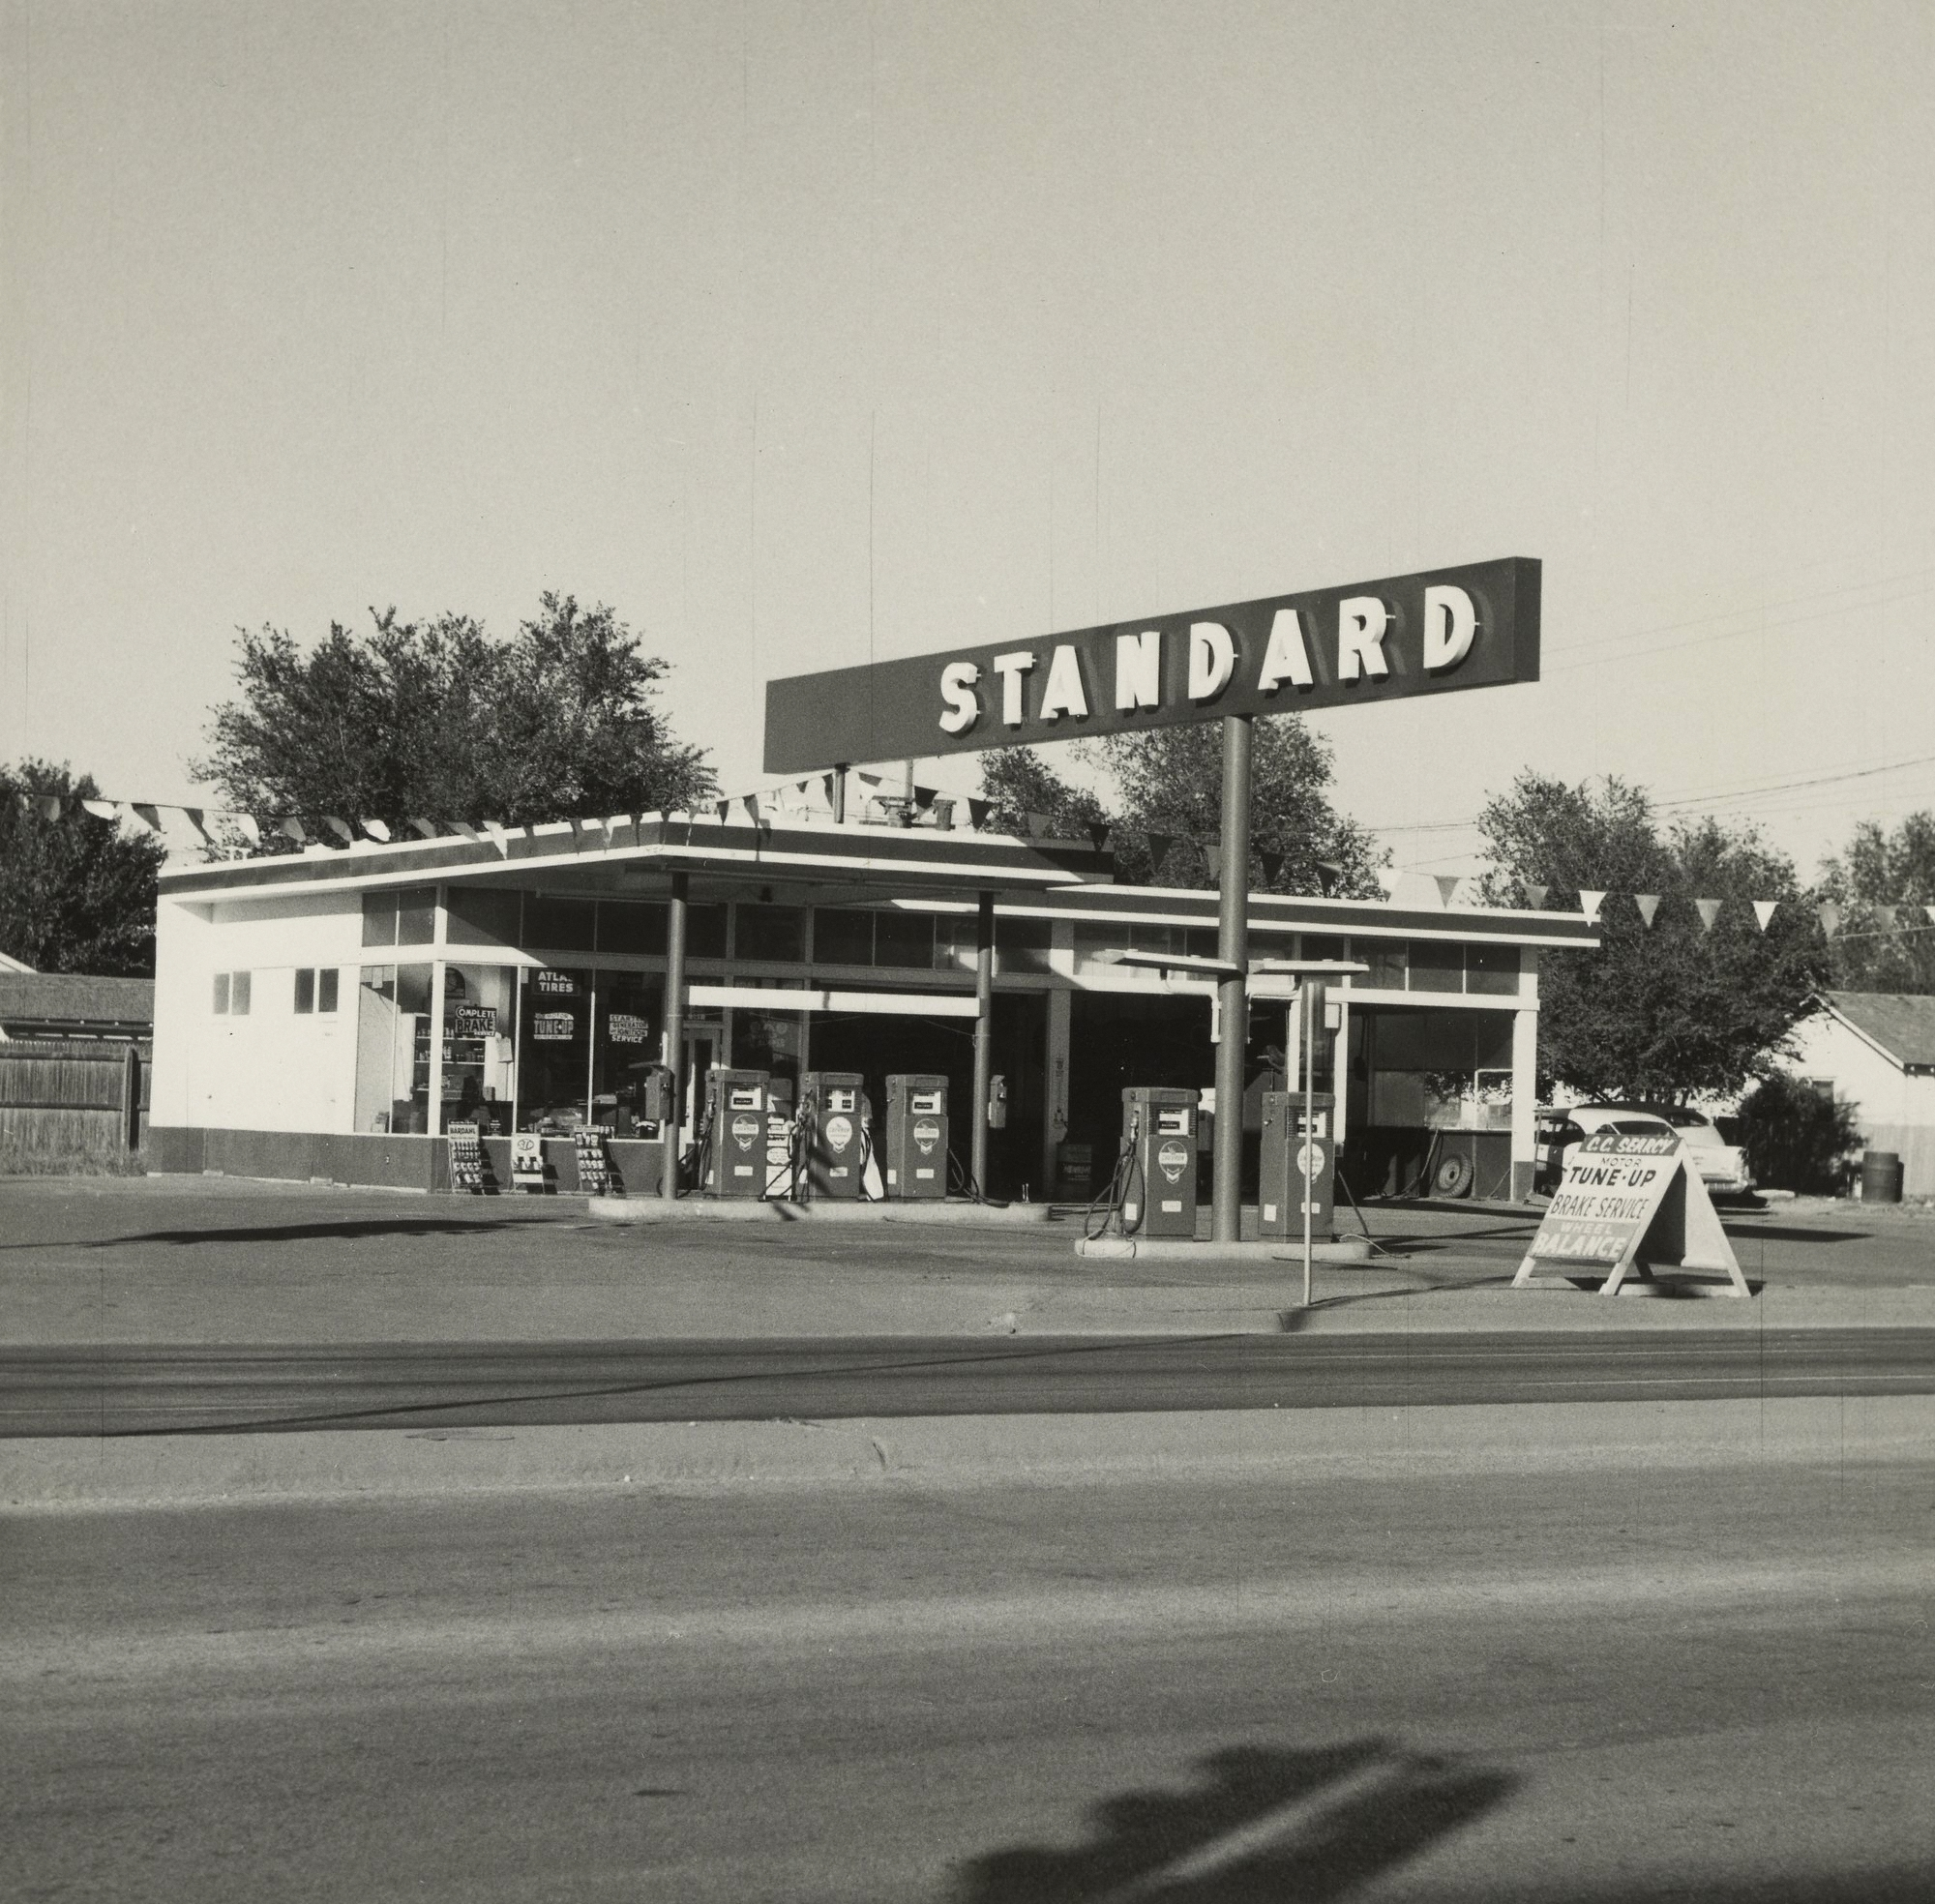 Ed Ruscha. 'Standard, Amarillo, Texas,' 1962, gelatin silver print, 4 5/8 in. x 4 3/4 in. Sheet: 12.9 x 12.6 cm (5 1/16 x 4 15/16 in.) Accession No. 2011.54.9 Copyright: © Ed Ruscha Object Credit: The J. Paul Getty Museum, Los Angeles